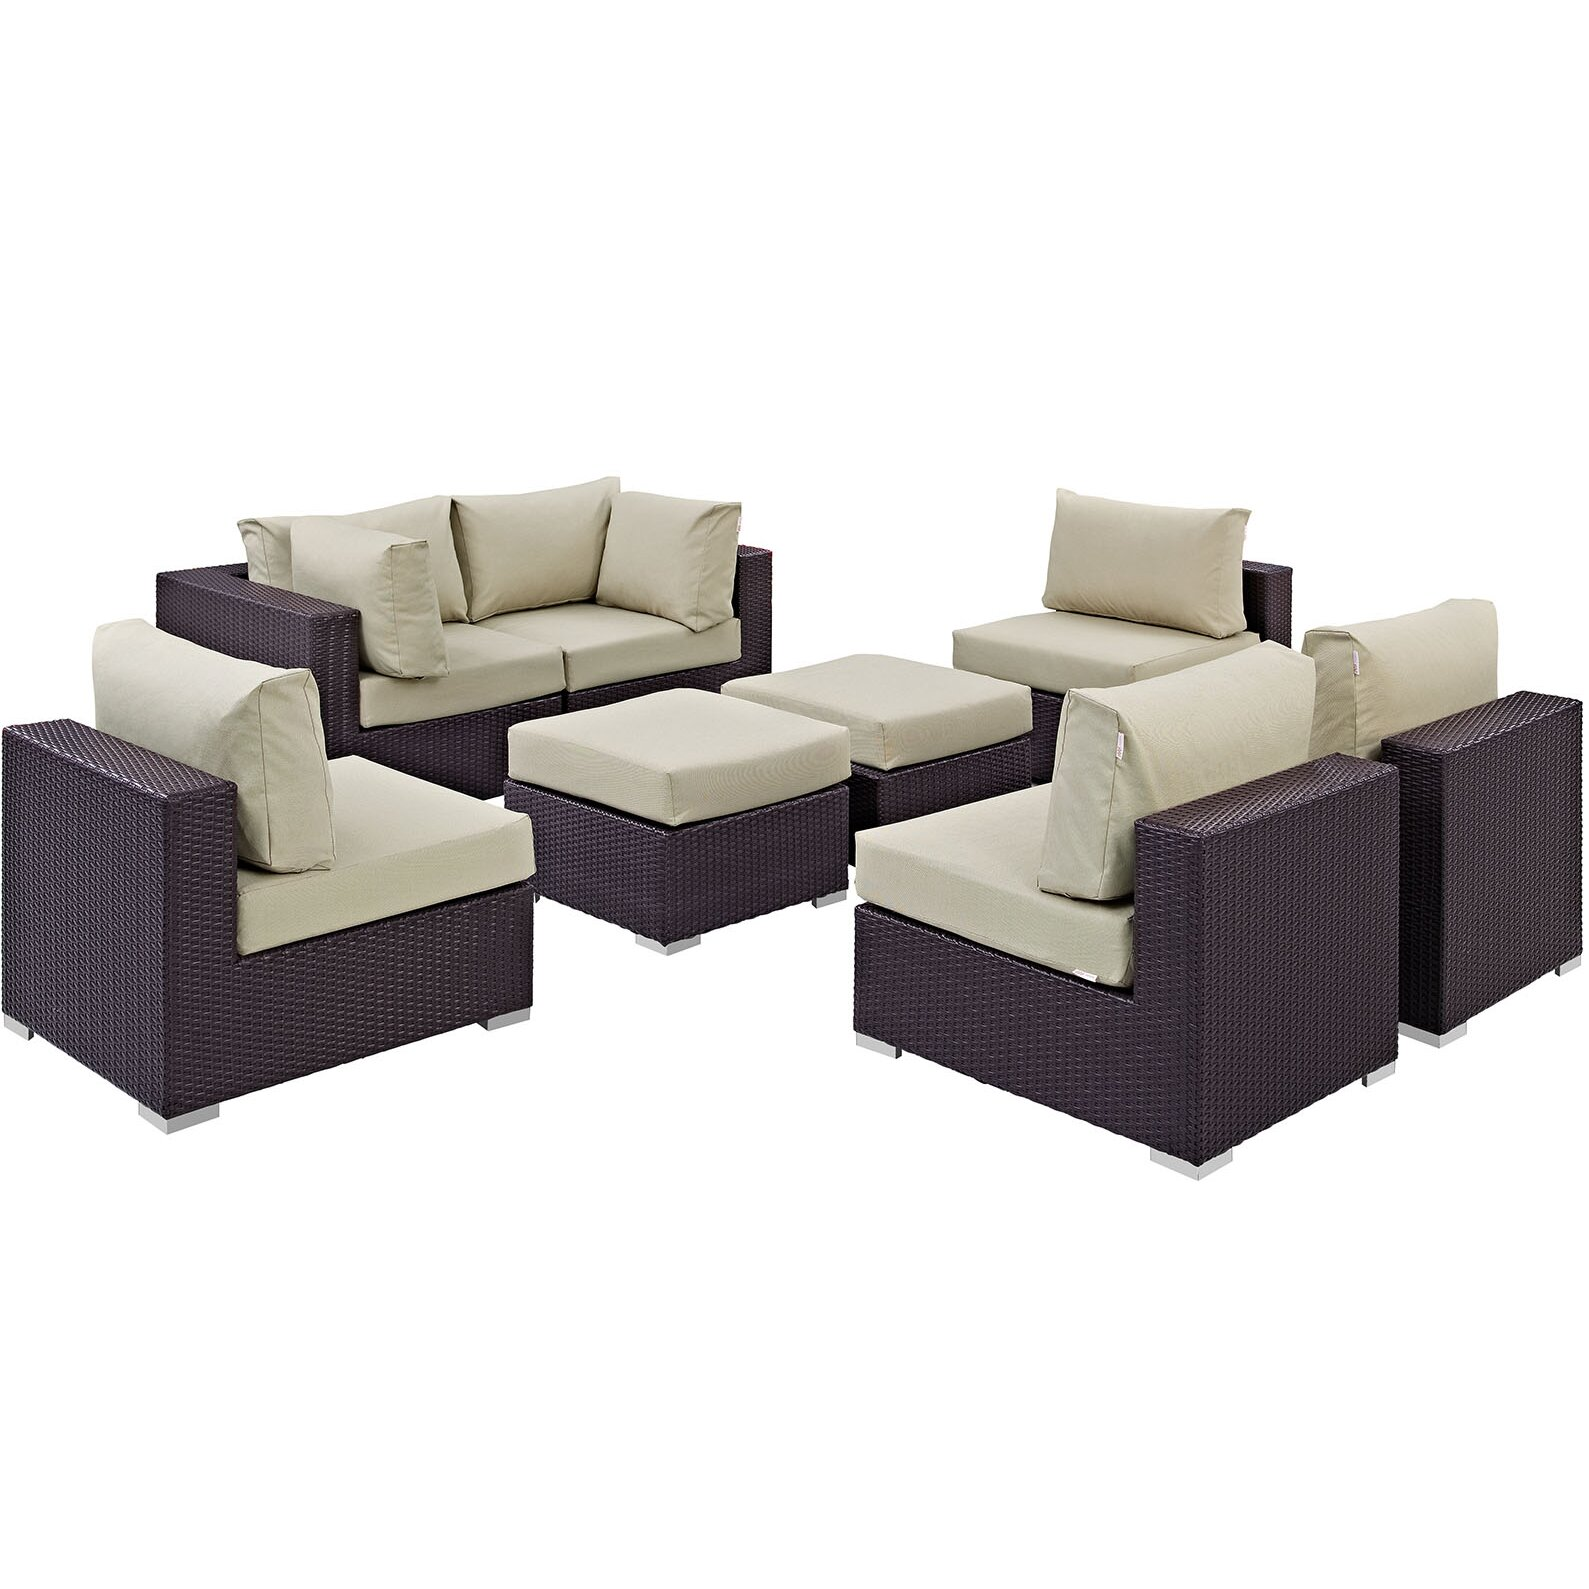 modway convene 8 outdoor patio sectional set with